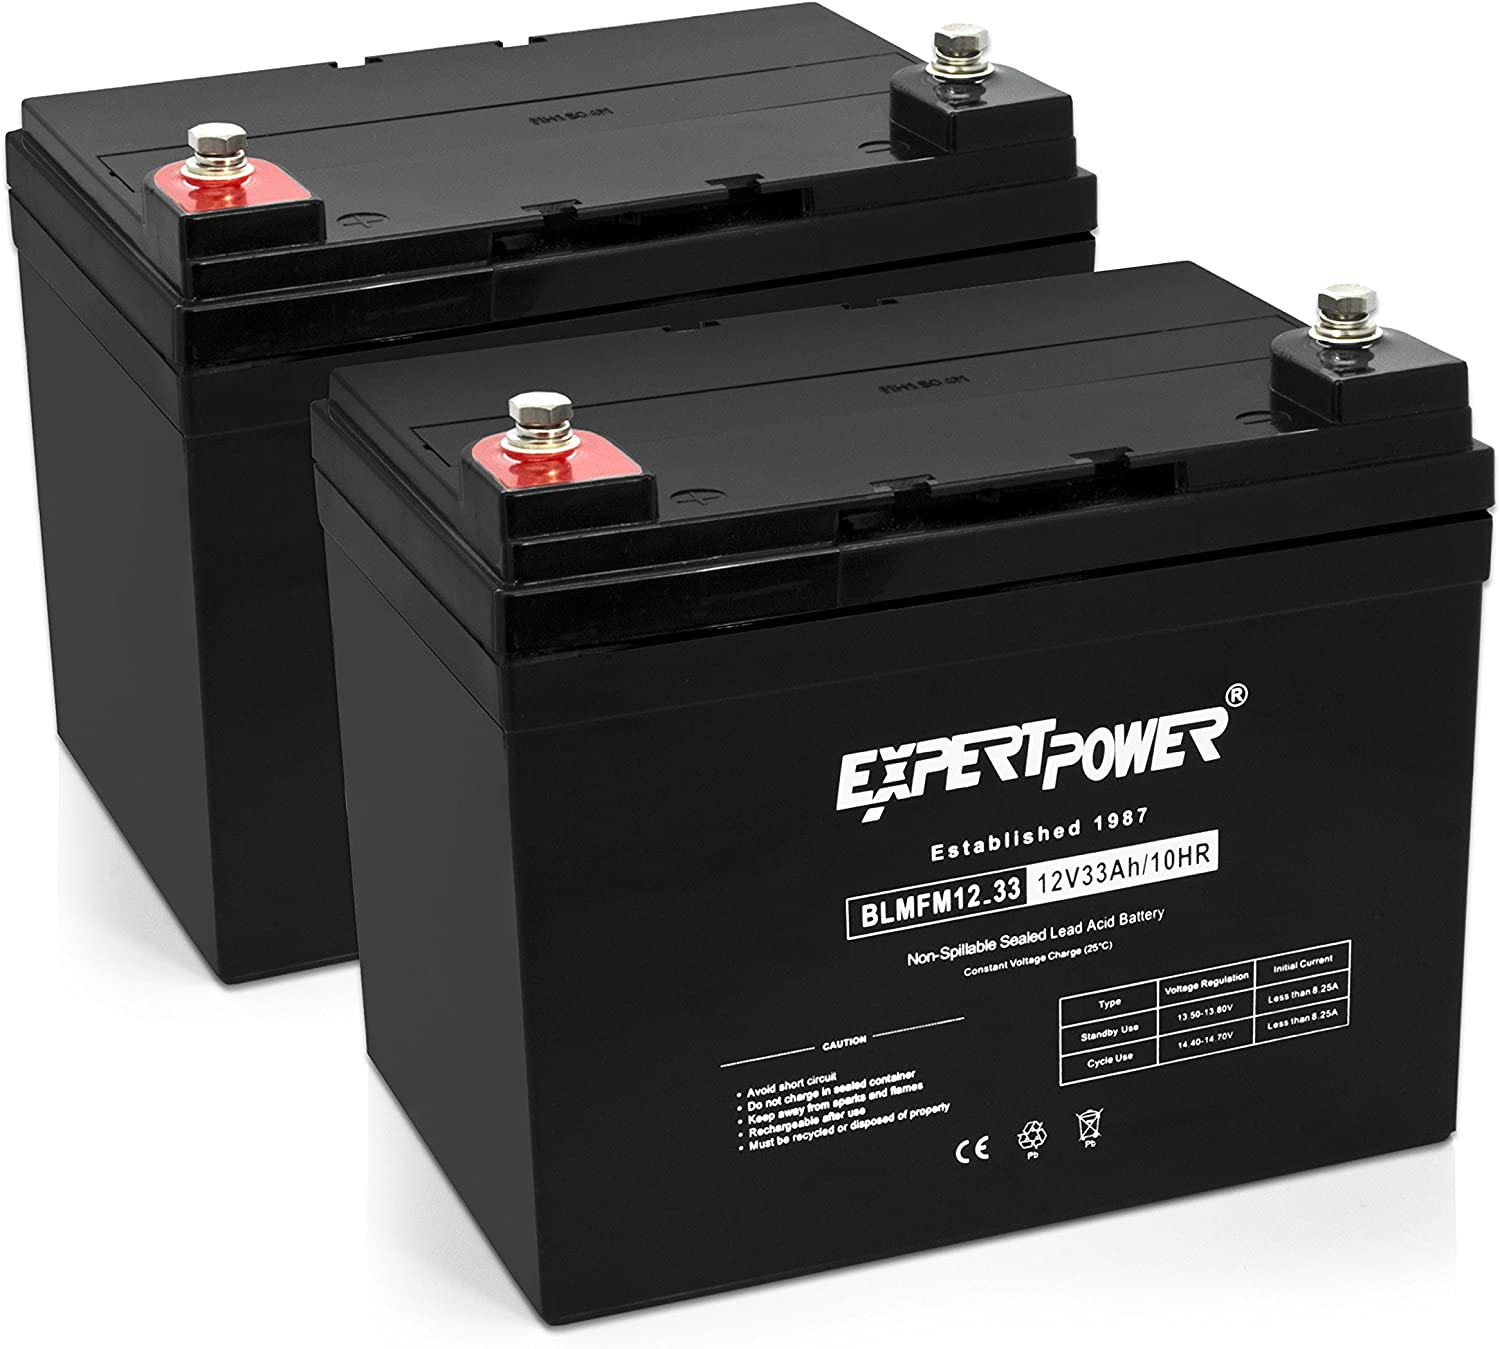 12 V 35 AH EXP 12350 Sealed Lead Acid Battery Deepcycle Solar Energy Storage 2 Pack